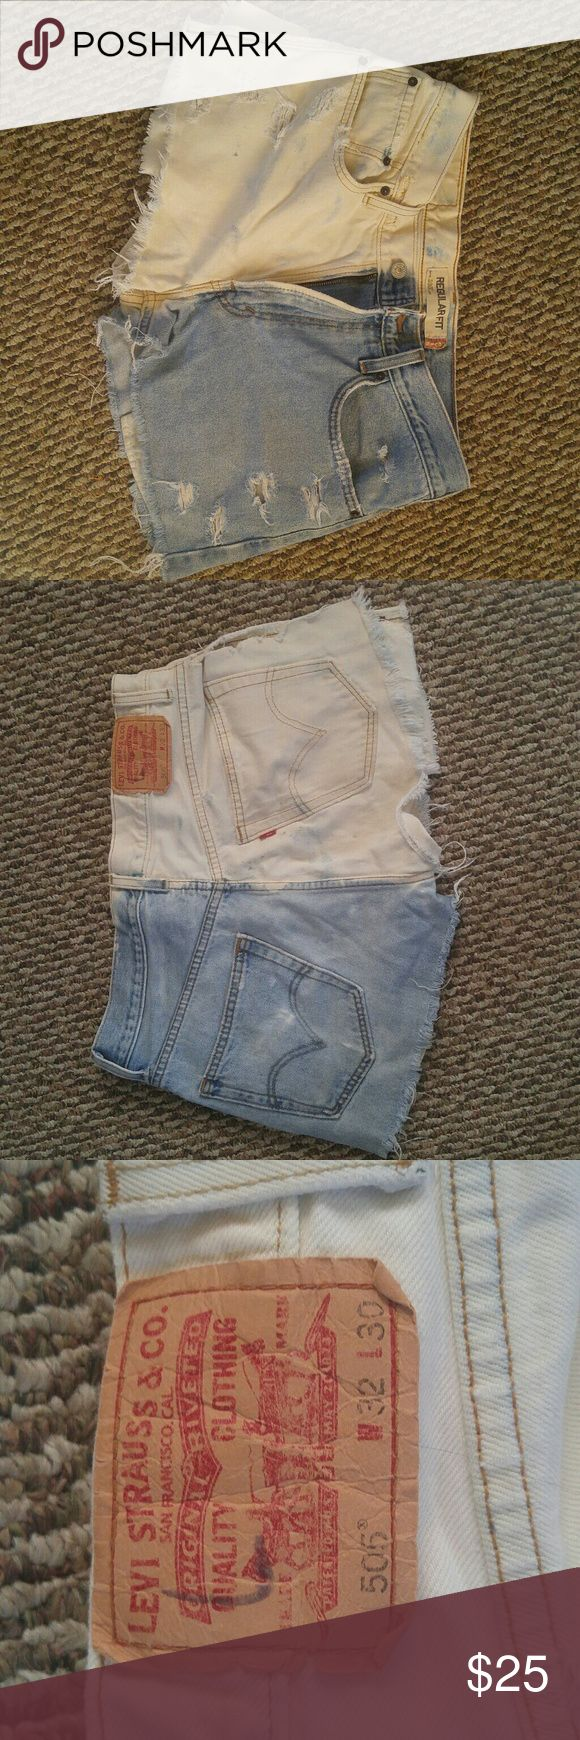 Distressed Levi's shorts Acid washed distressed shorts with a slit up the side that can be closed with safety pins to add a fashion edge. Levi's Shorts Jean Shorts